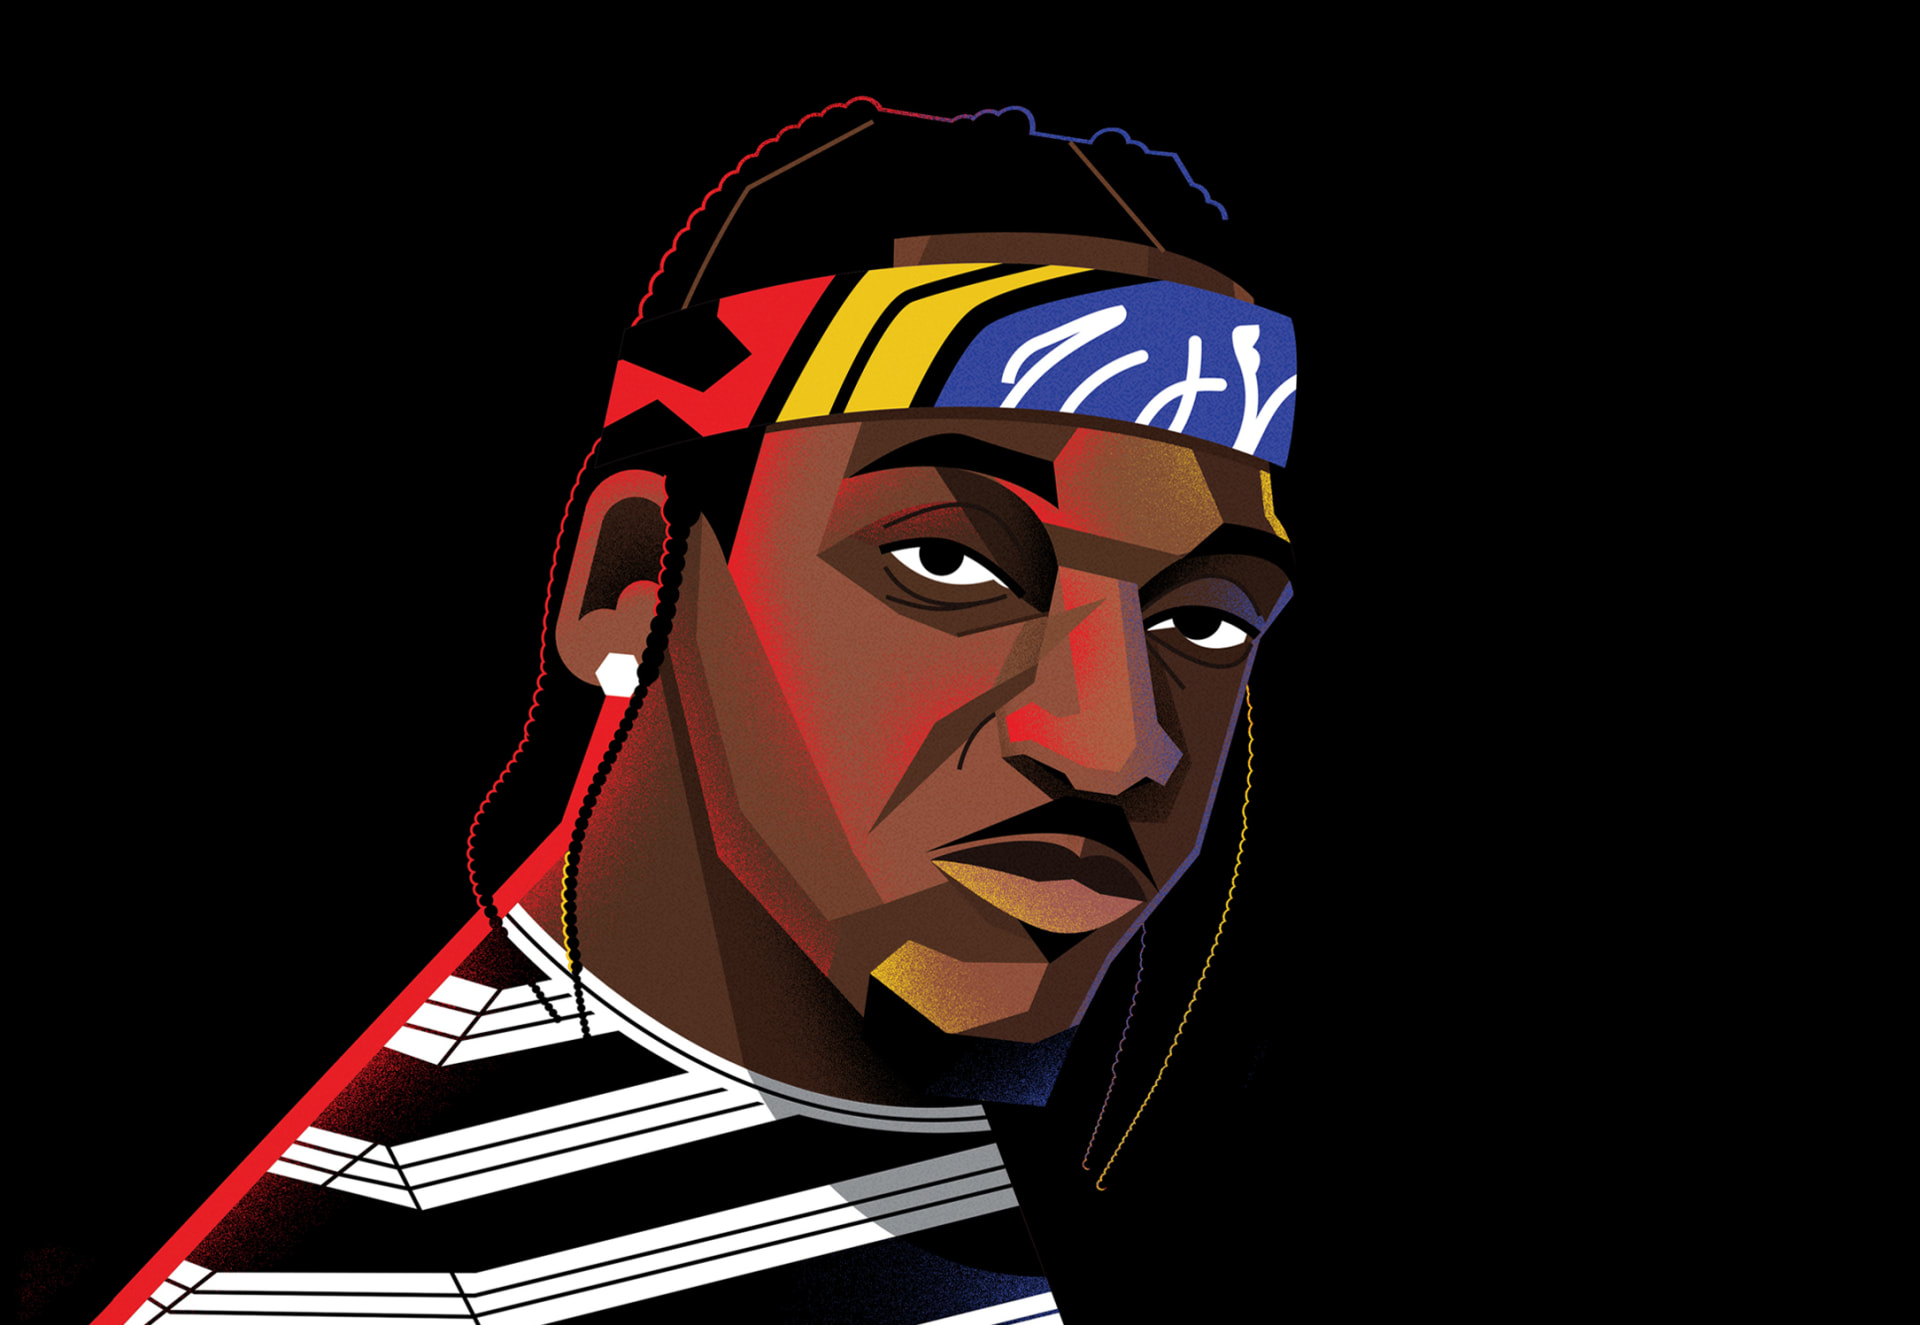 Illustration of Pusha T by Dale Edwin Murray